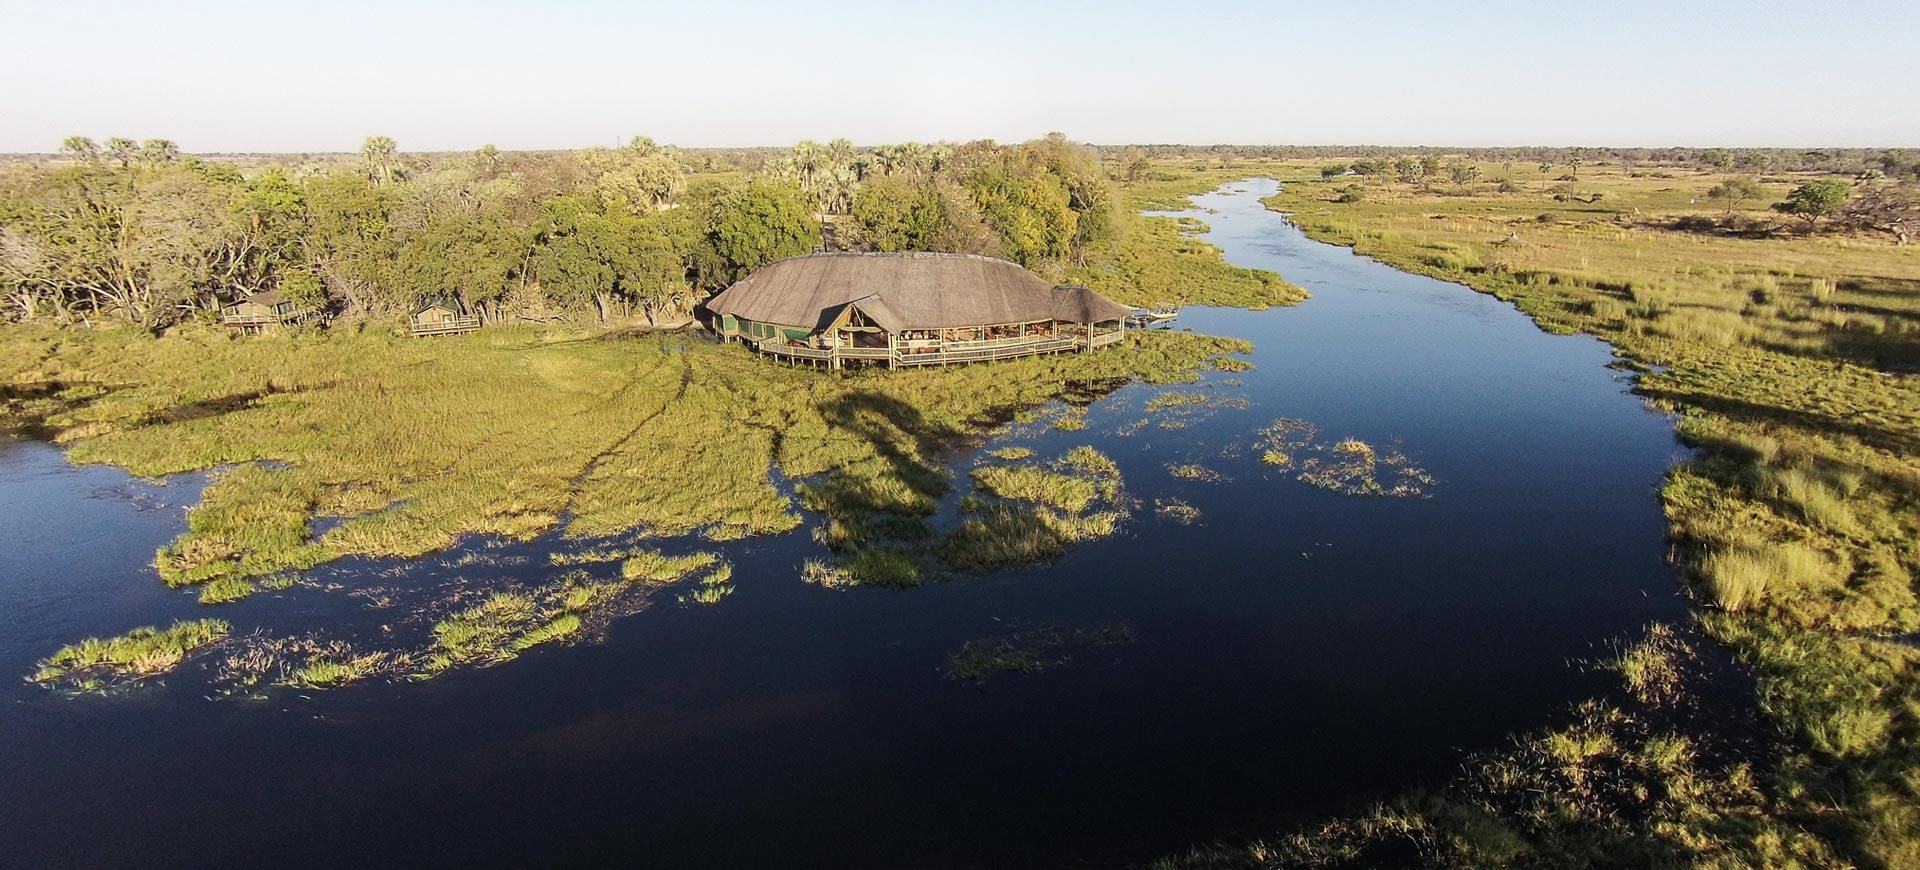 Okavango Delta Moremi Crossing Safari Lodge